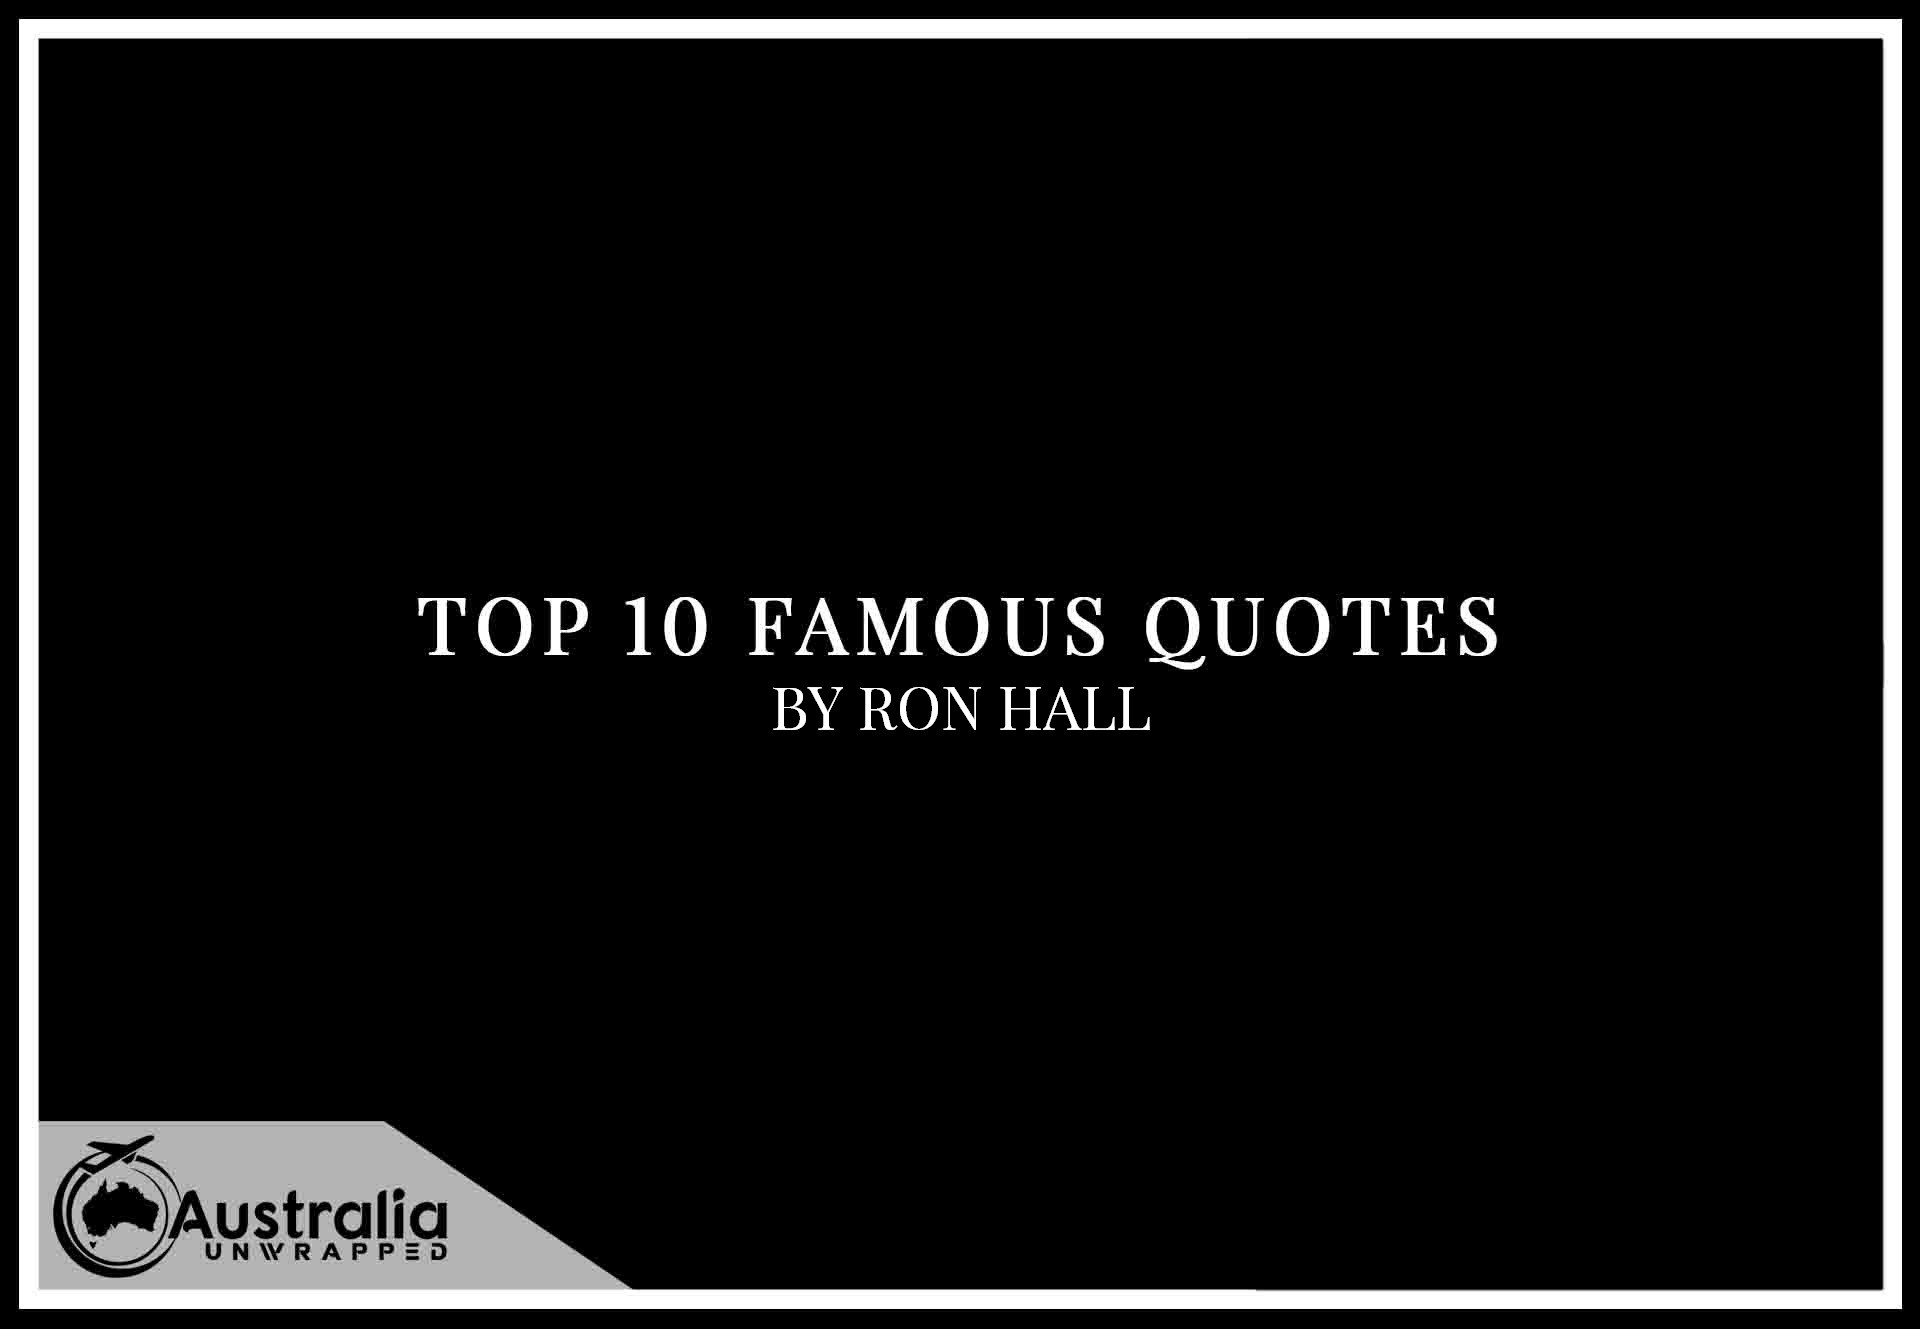 Top 10 Famous Quotes by Author Ron Hall